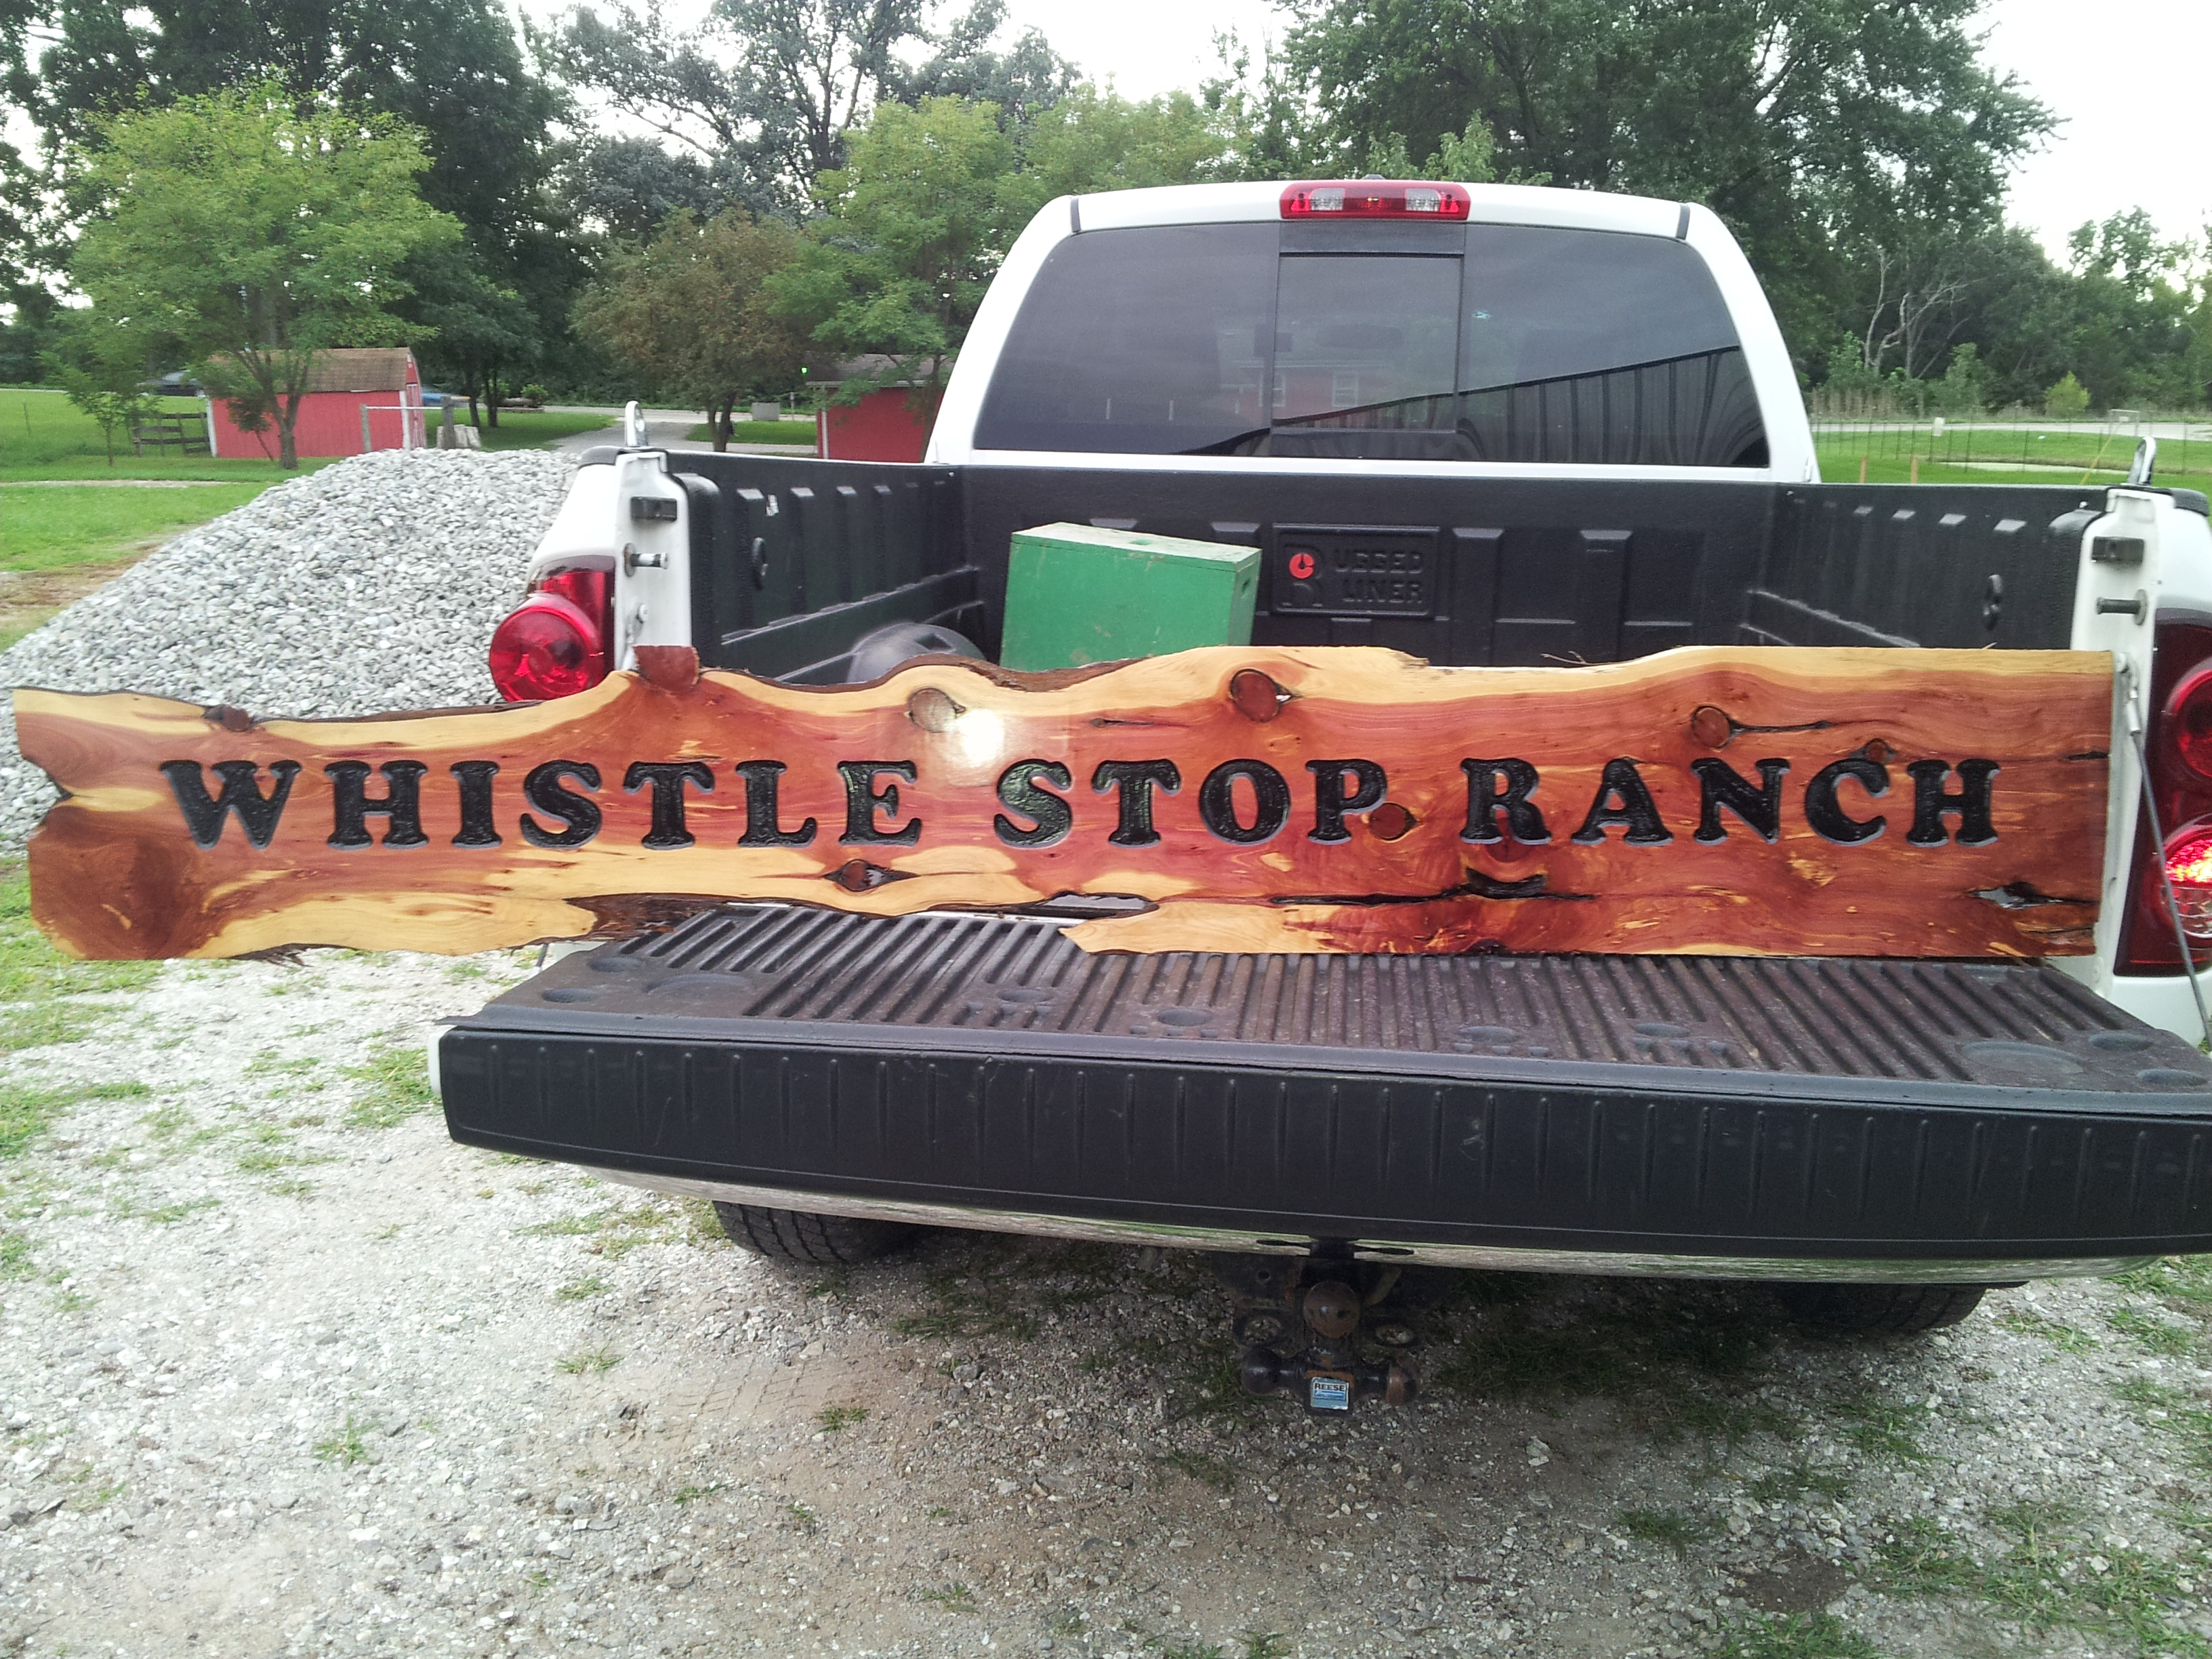 whistlestopranch1.jpg